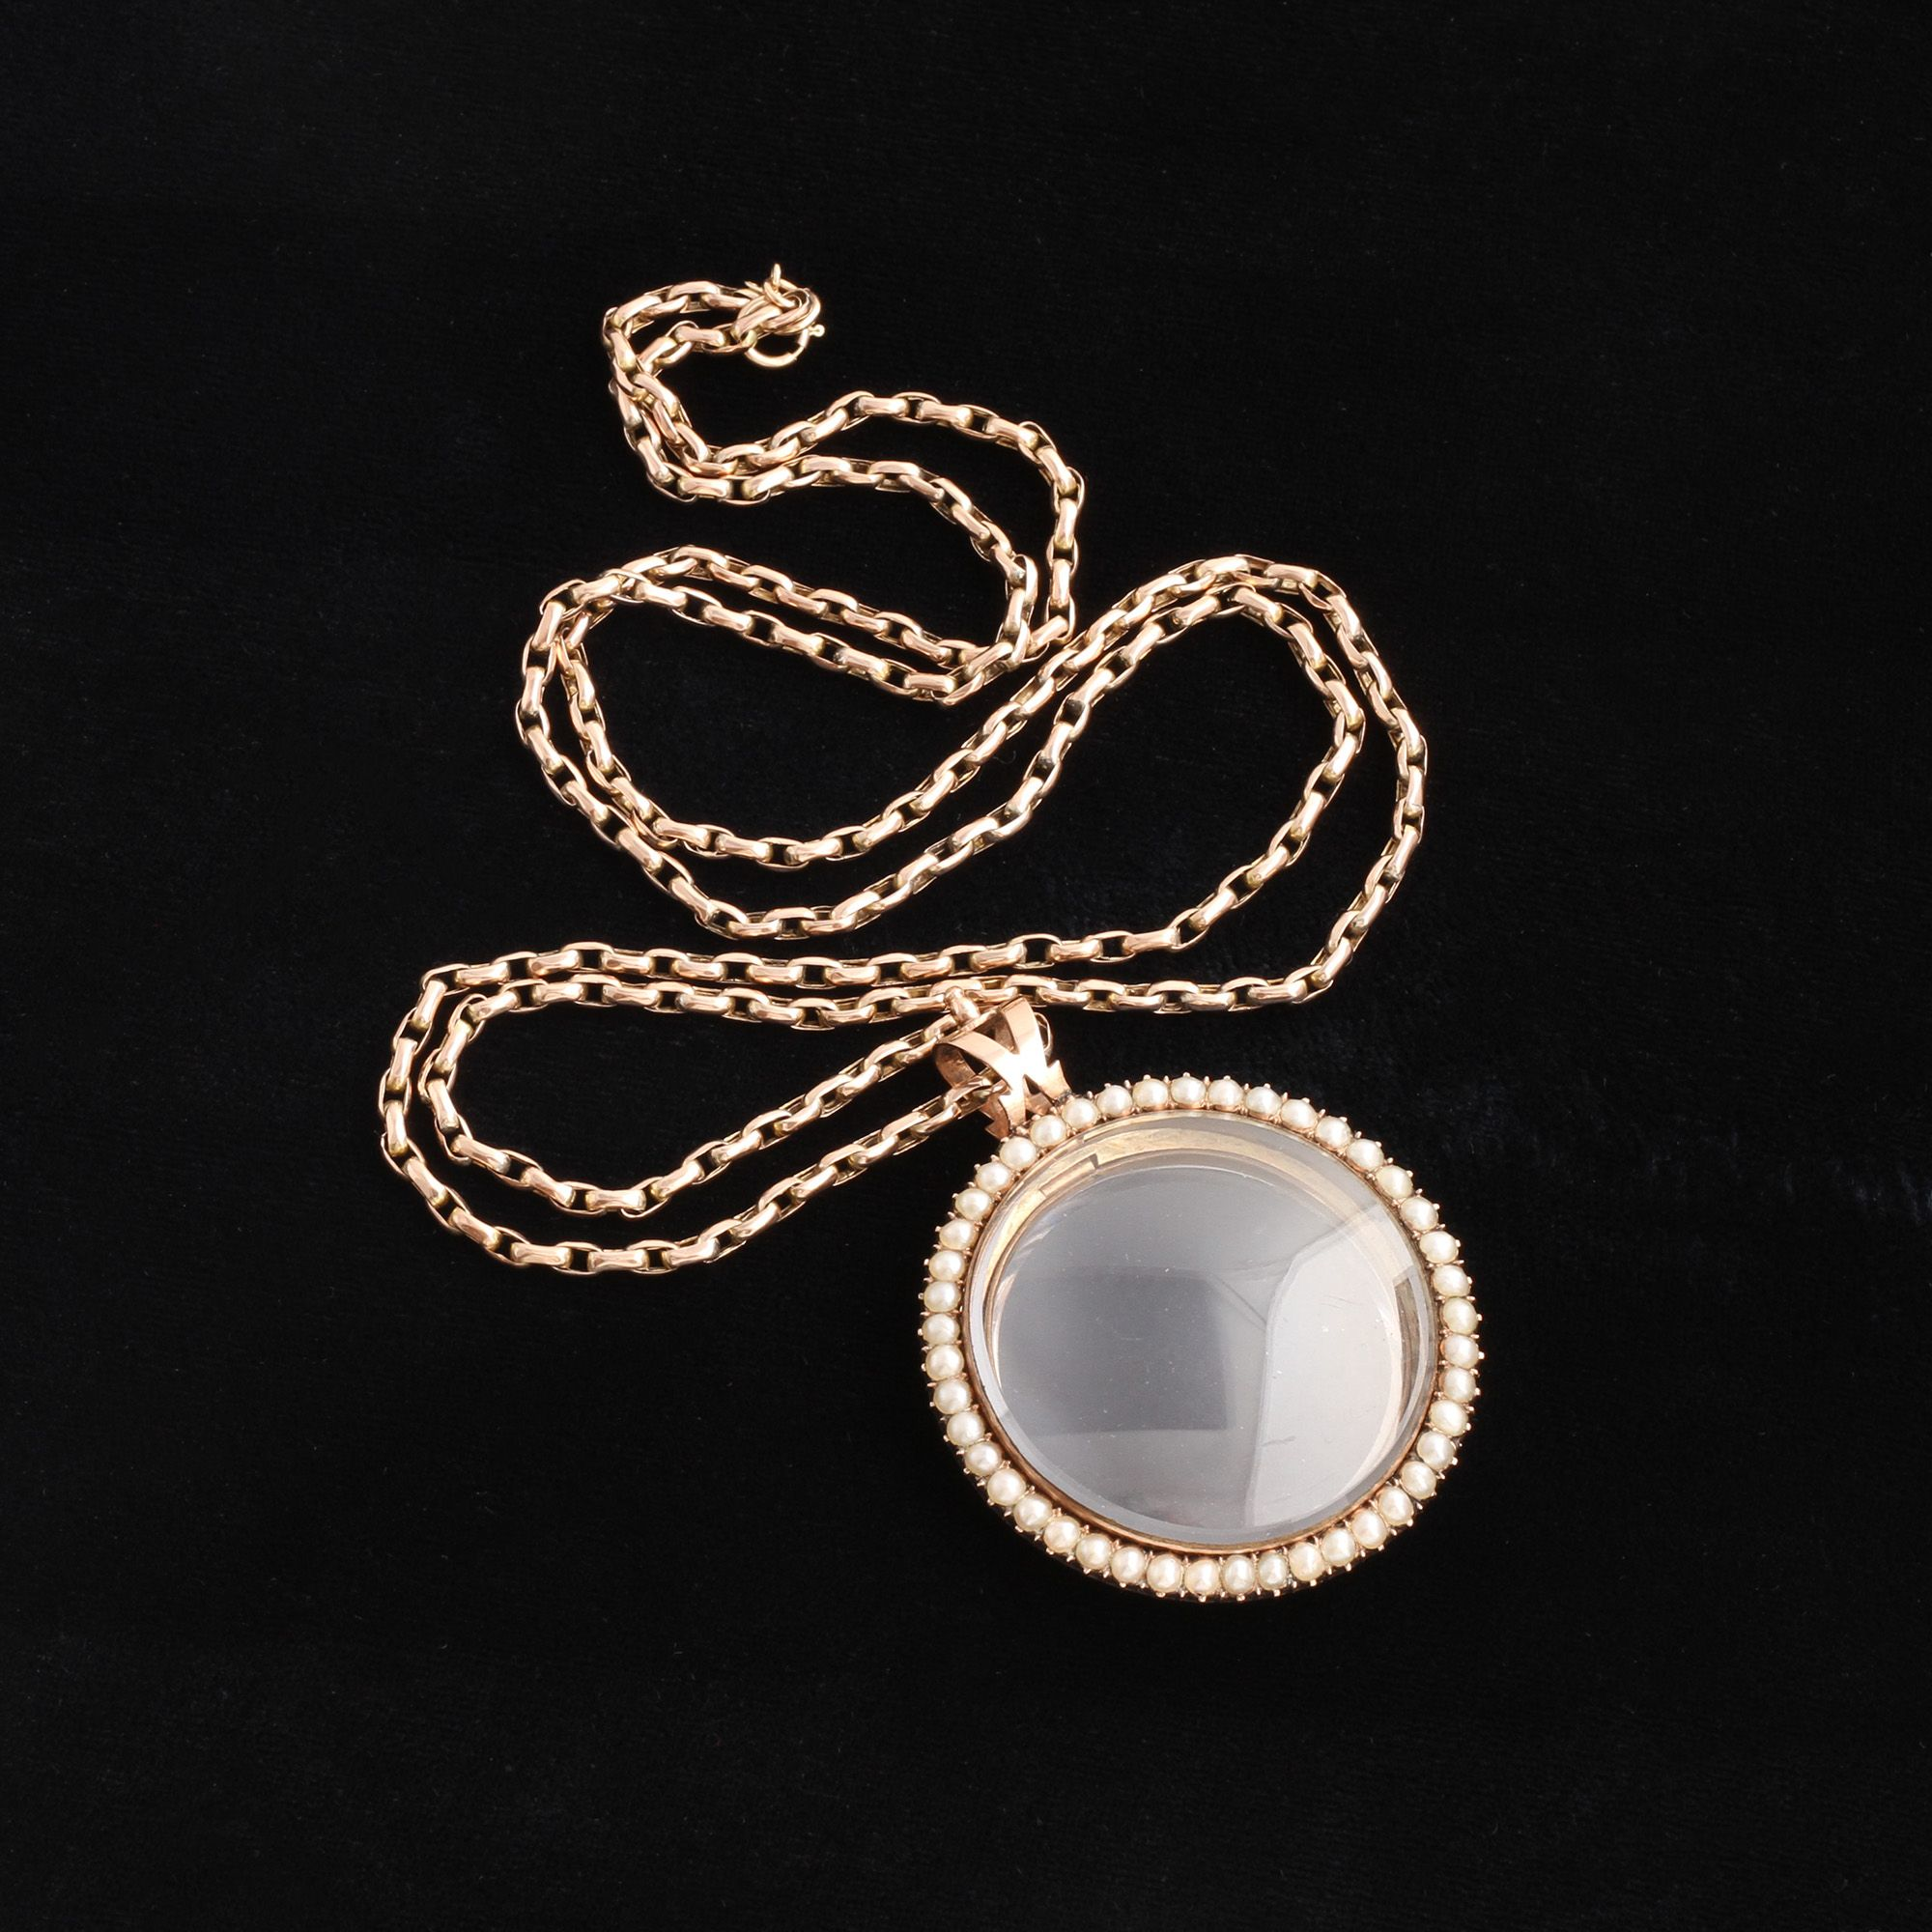 Detail of Early Victorian Rose Gold and Pearl Large Locket Necklace